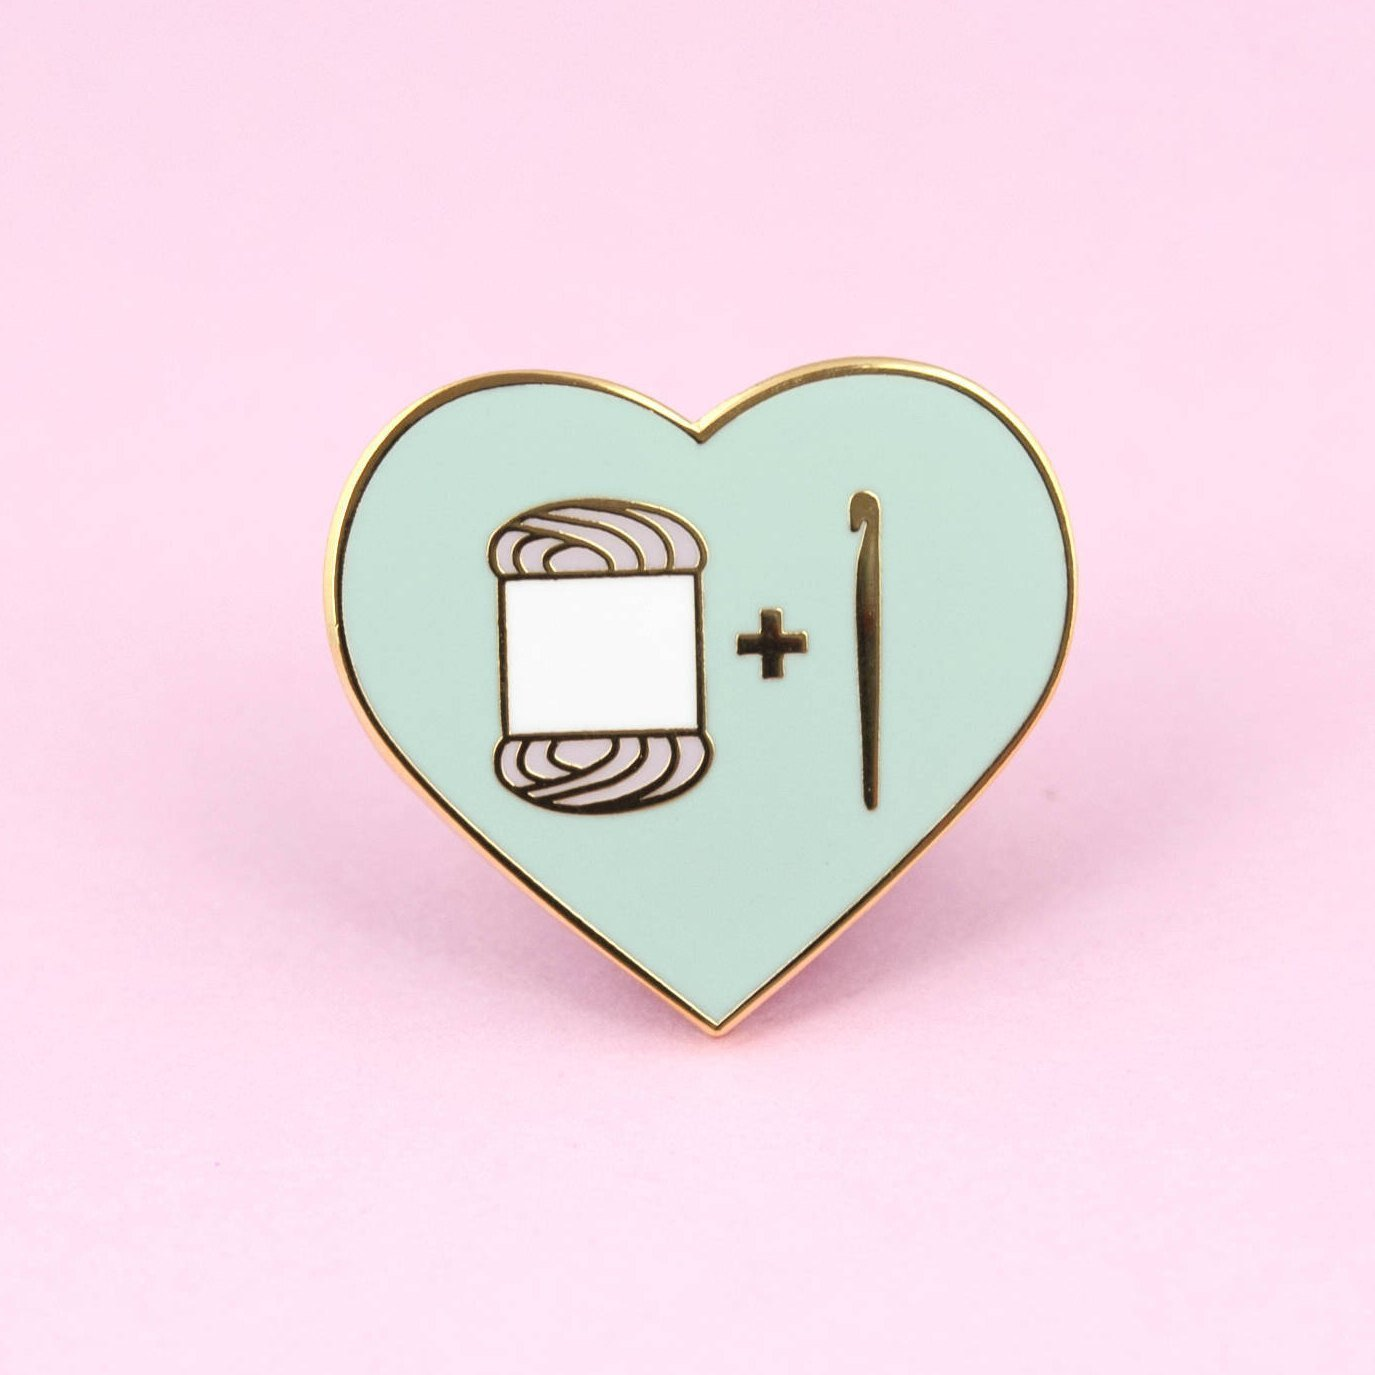 Crochet Pin by The Clever Clove